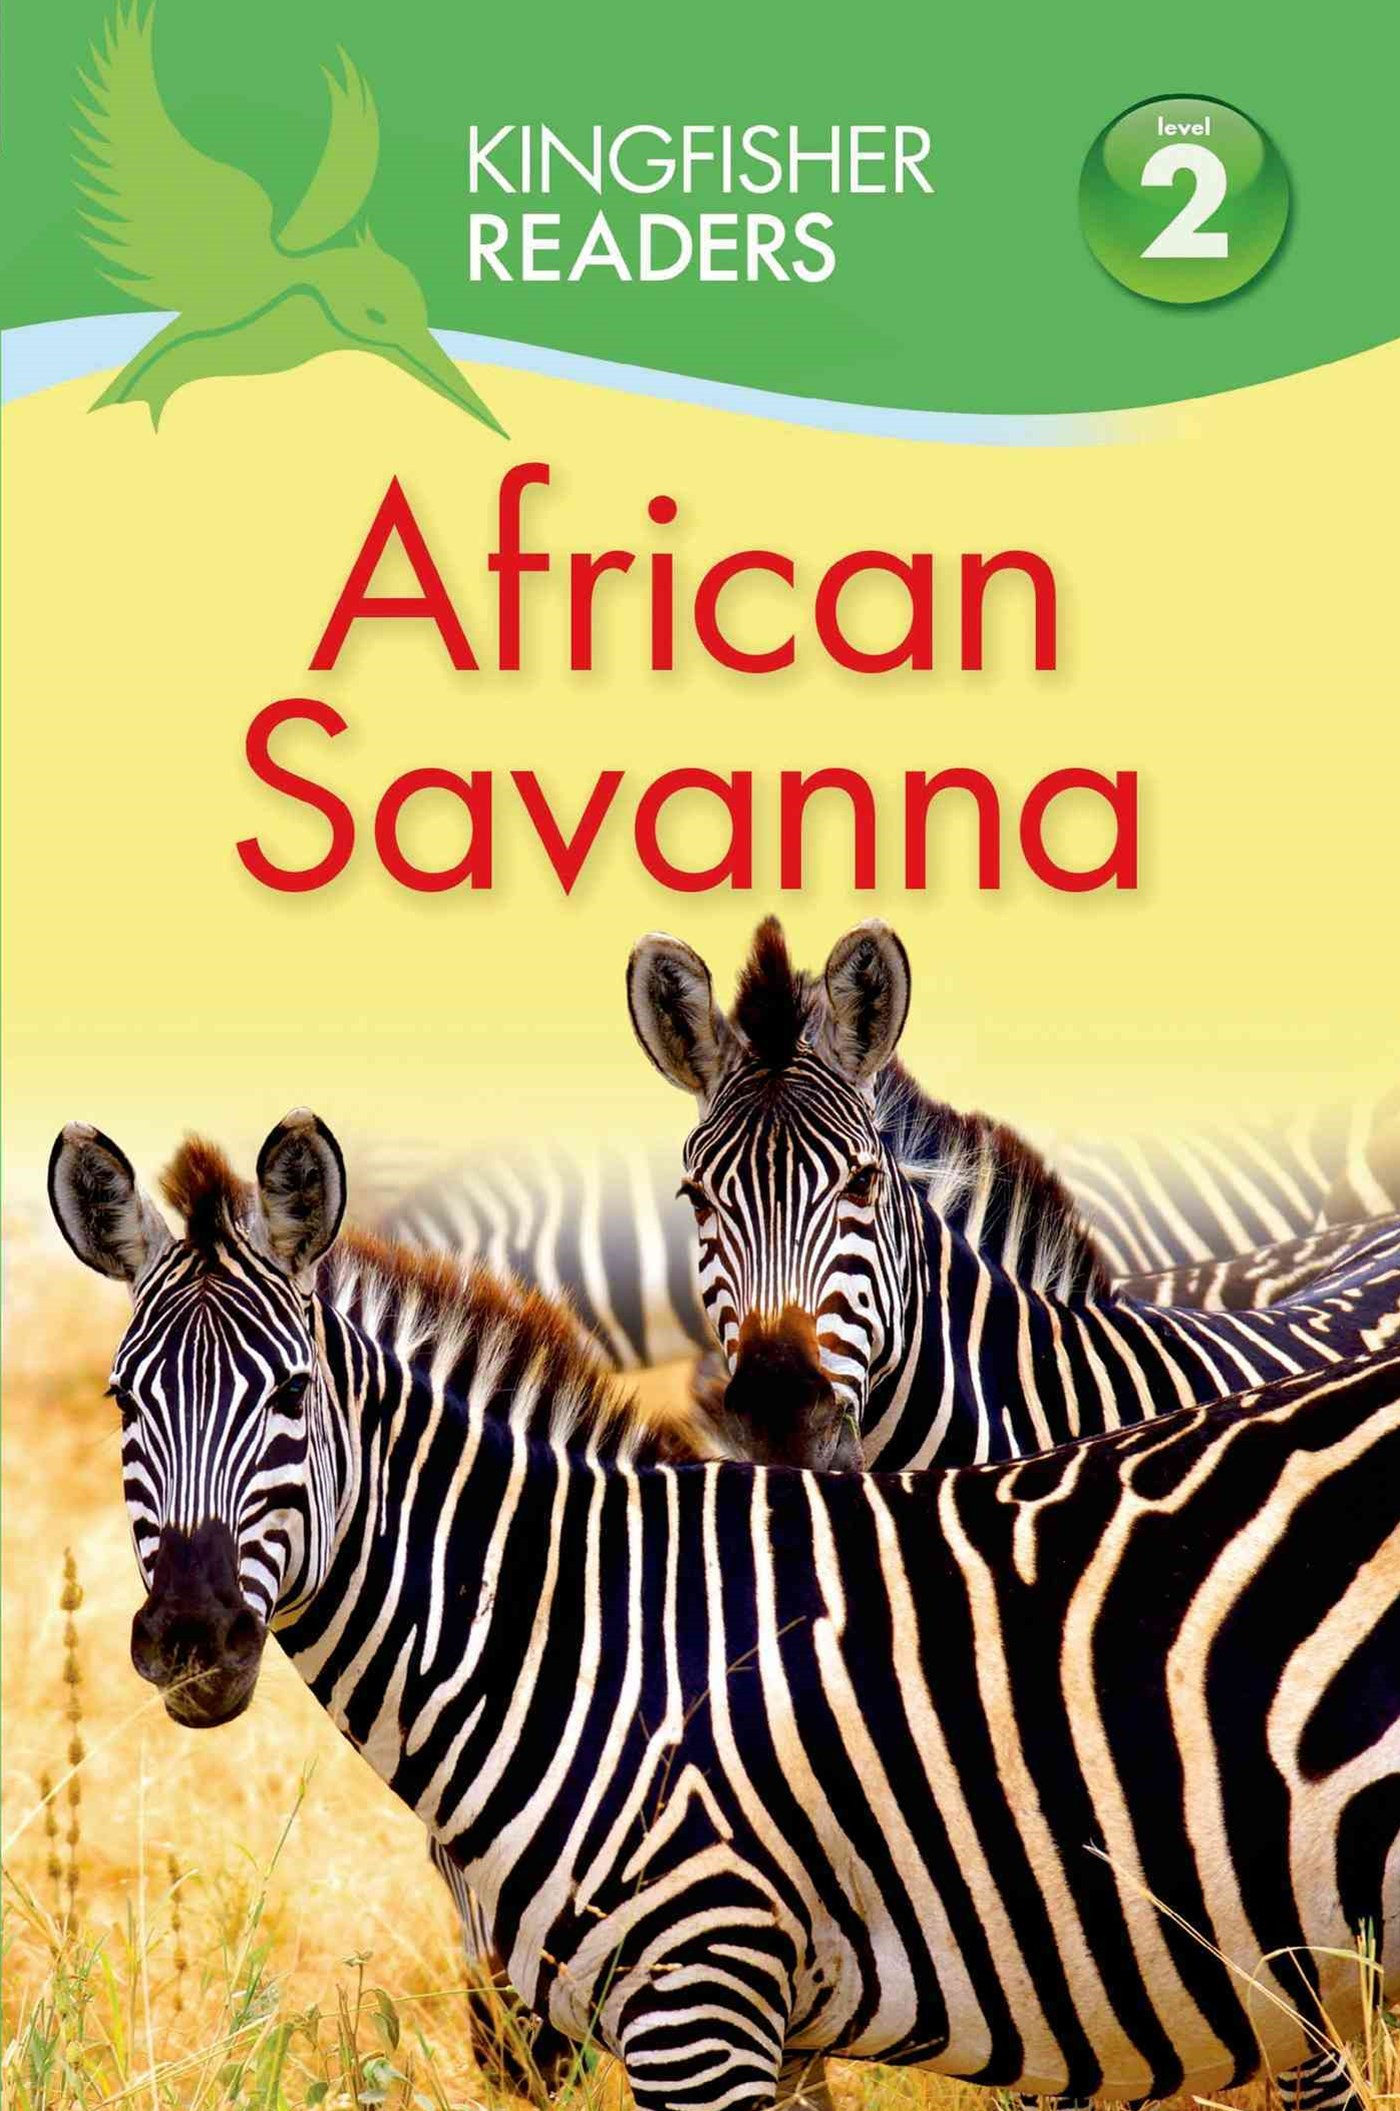 Kingfisher Readers L2: African Savanna